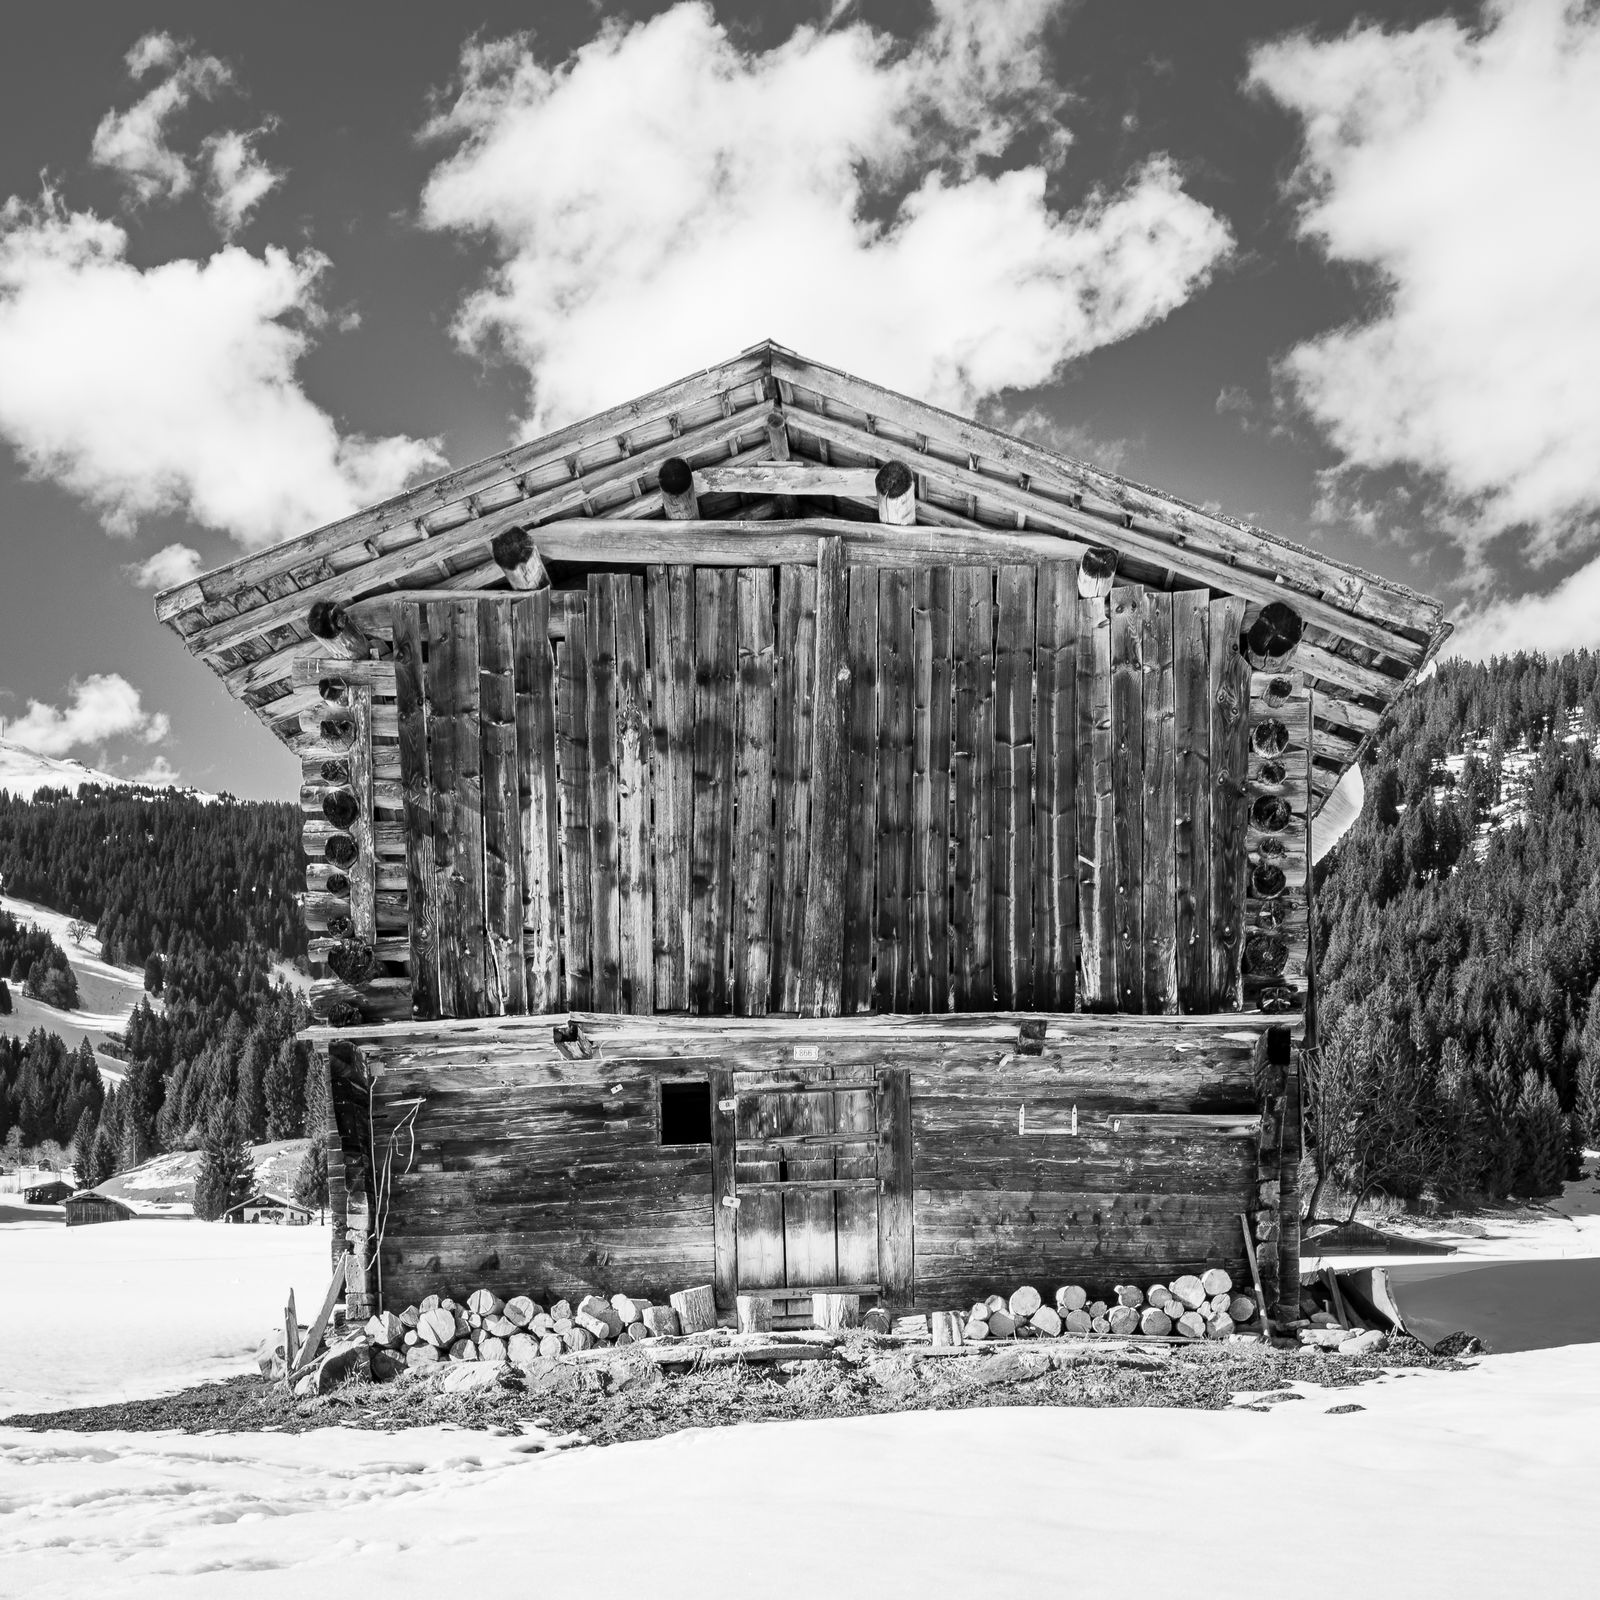 Alpine Barns: A Piece of History Coming to an End